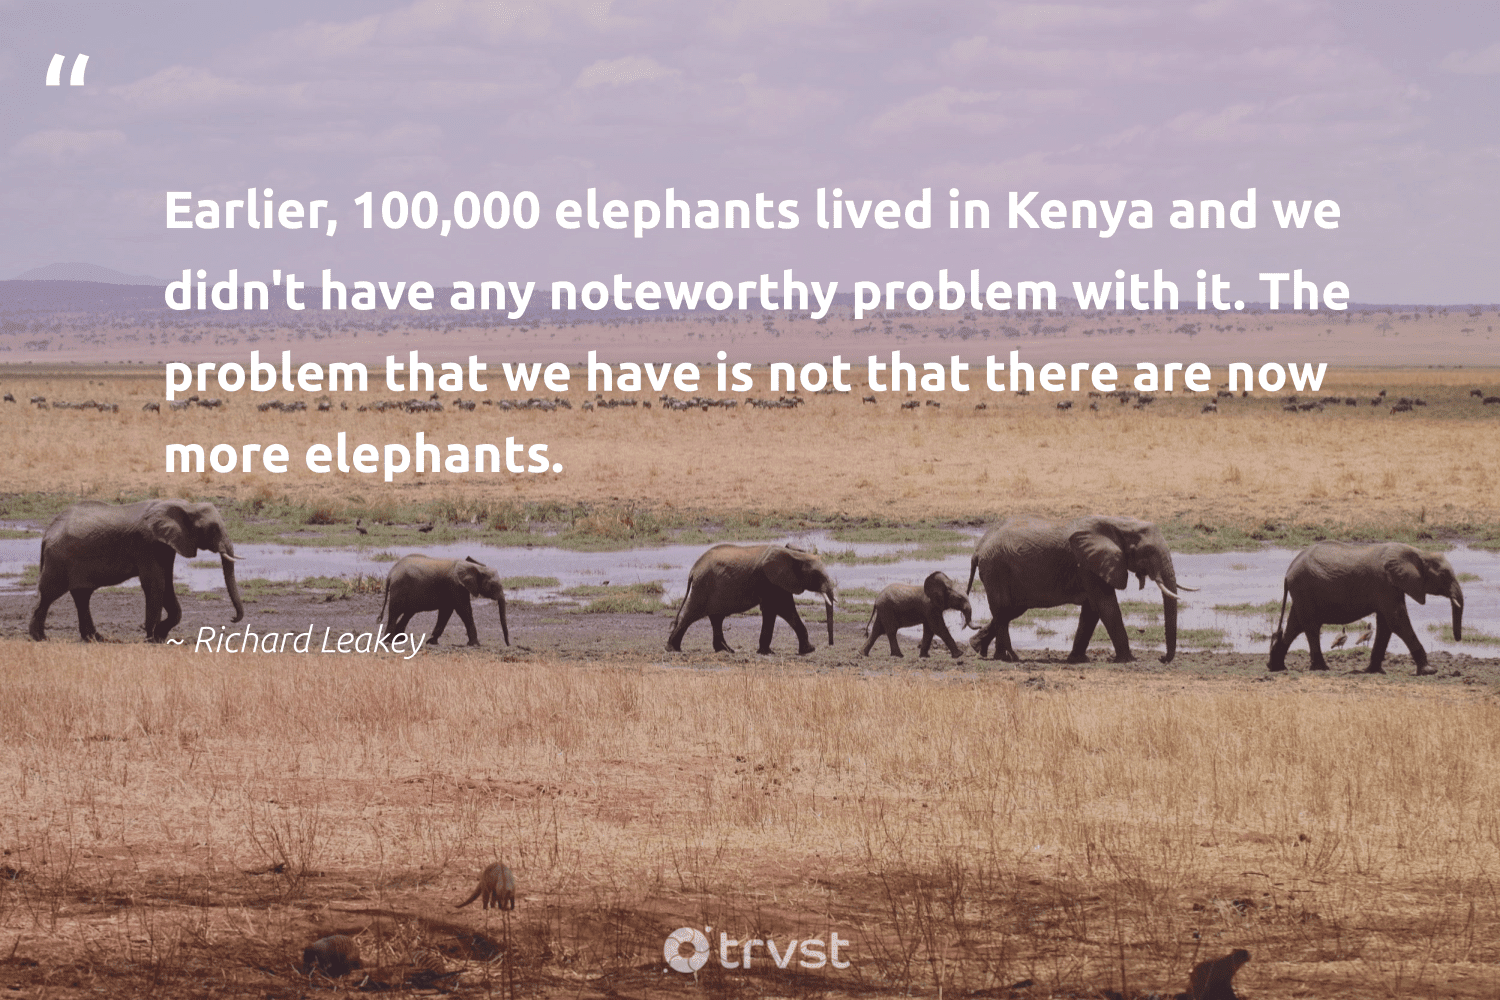 """""""Earlier, 100,000 elephants lived in Kenya and we didn't have any noteworthy problem with it. The problem that we have is not that there are now more elephants.""""  - Richard Leakey #trvst #quotes #elephants #wildgeography #thinkgreen #wildlife #changetheworld #conservation #bethechange #naturelovers #dosomething #endangered"""